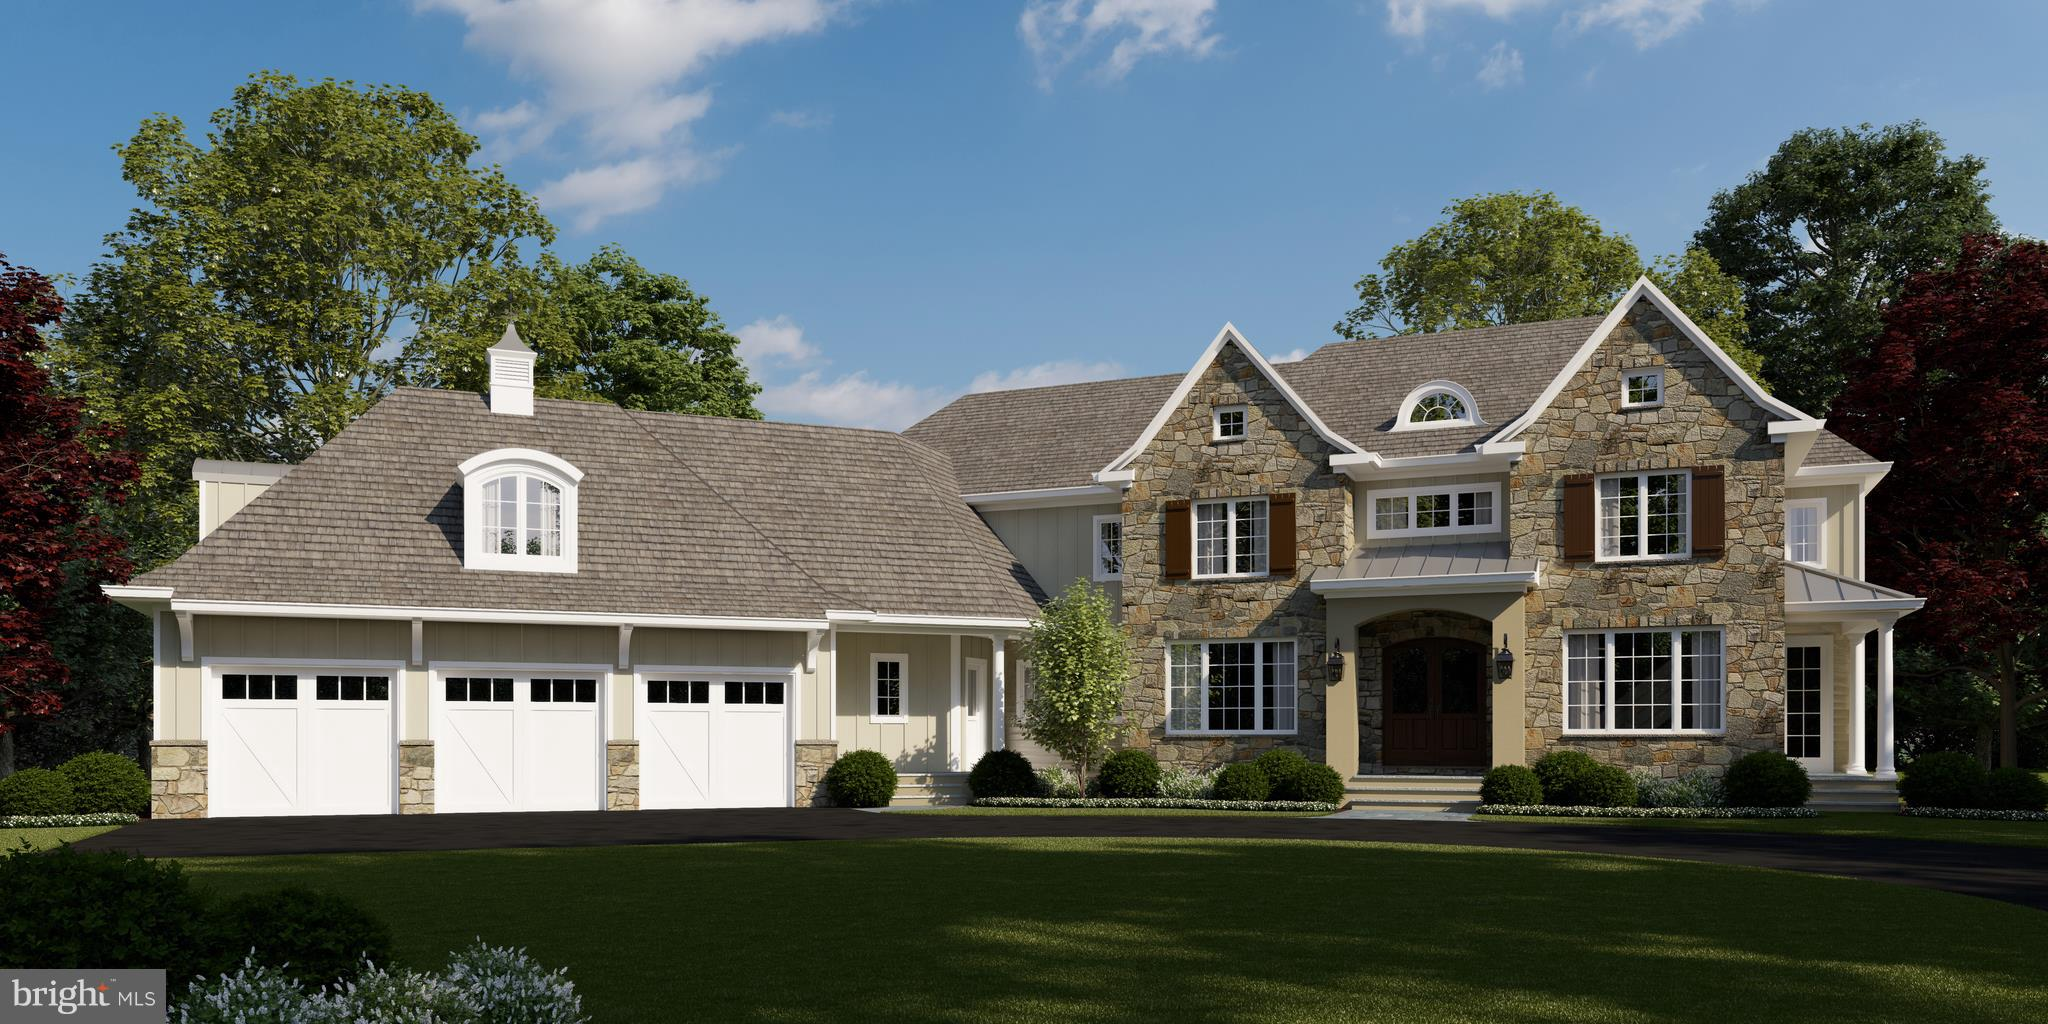 Lot 8 DOVECOTE LANE, VILLANOVA, PA 19085